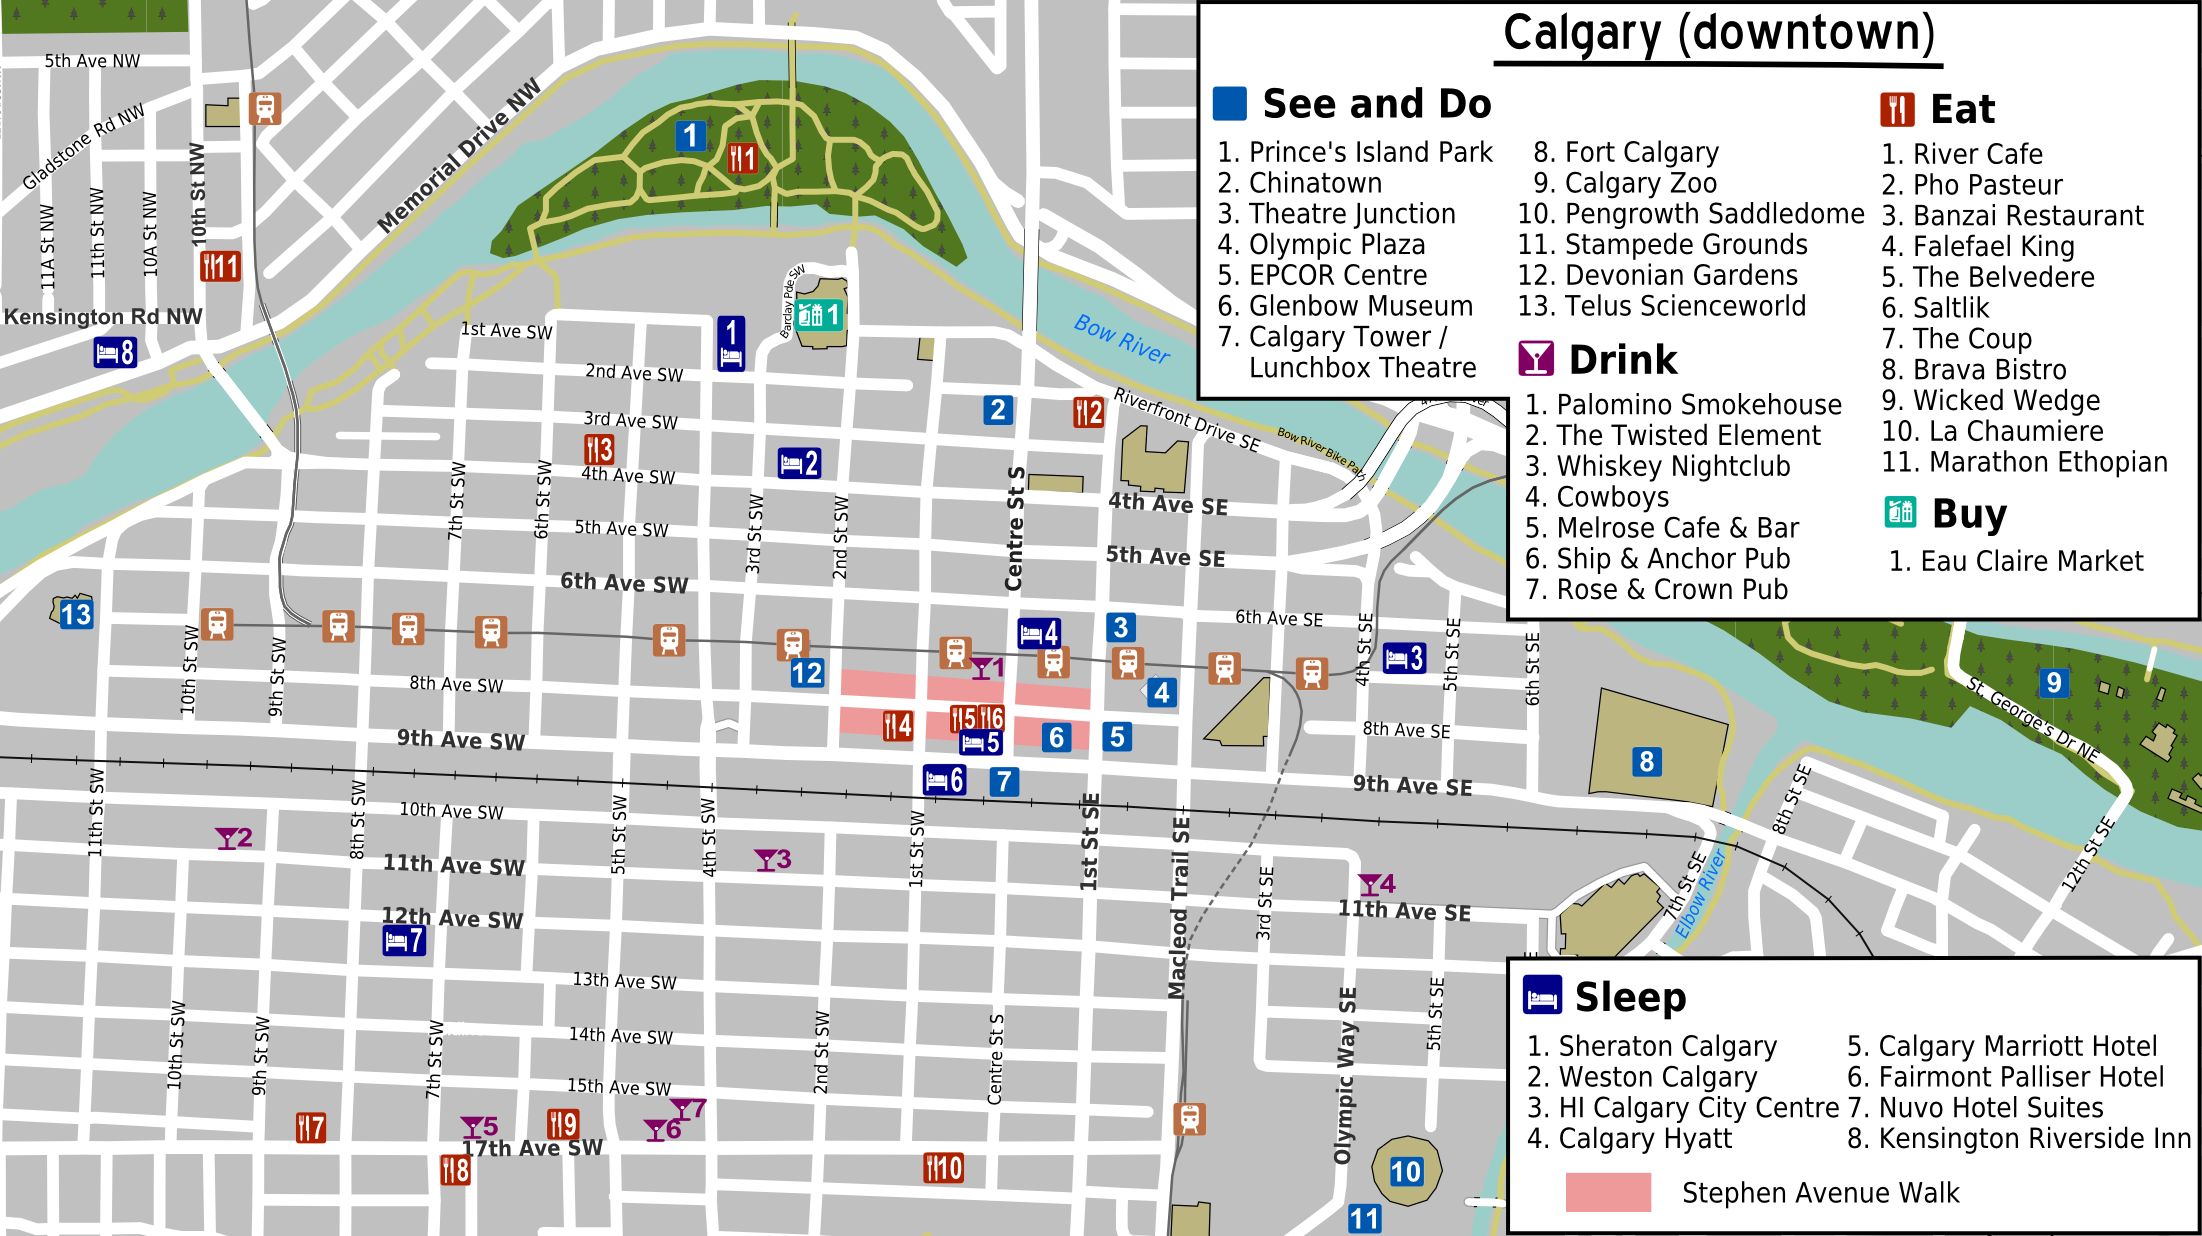 Map Of Downtown File:Calgary downtown map.png   Wikimedia Commons Map Of Downtown